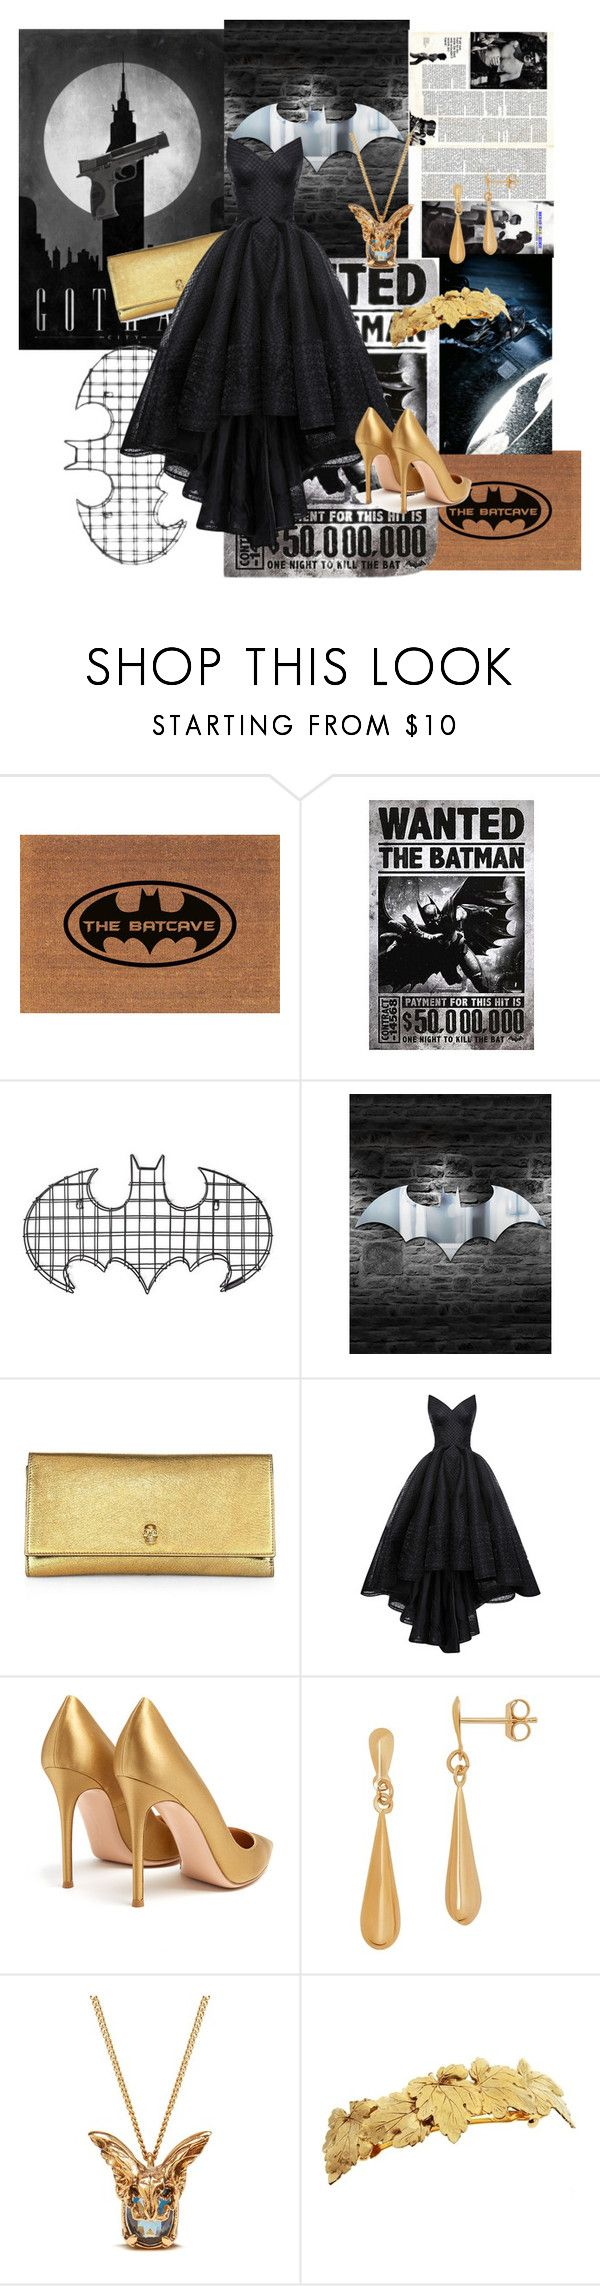 """""""batwomen"""" by cj-rodriguez ❤ liked on Polyvore featuring Warner Bros., ADAM, Alexander McQueen, Zac Posen, Gianvito Rossi, Lord & Taylor, Mulberry, L. Erickson and Smith & Wesson"""